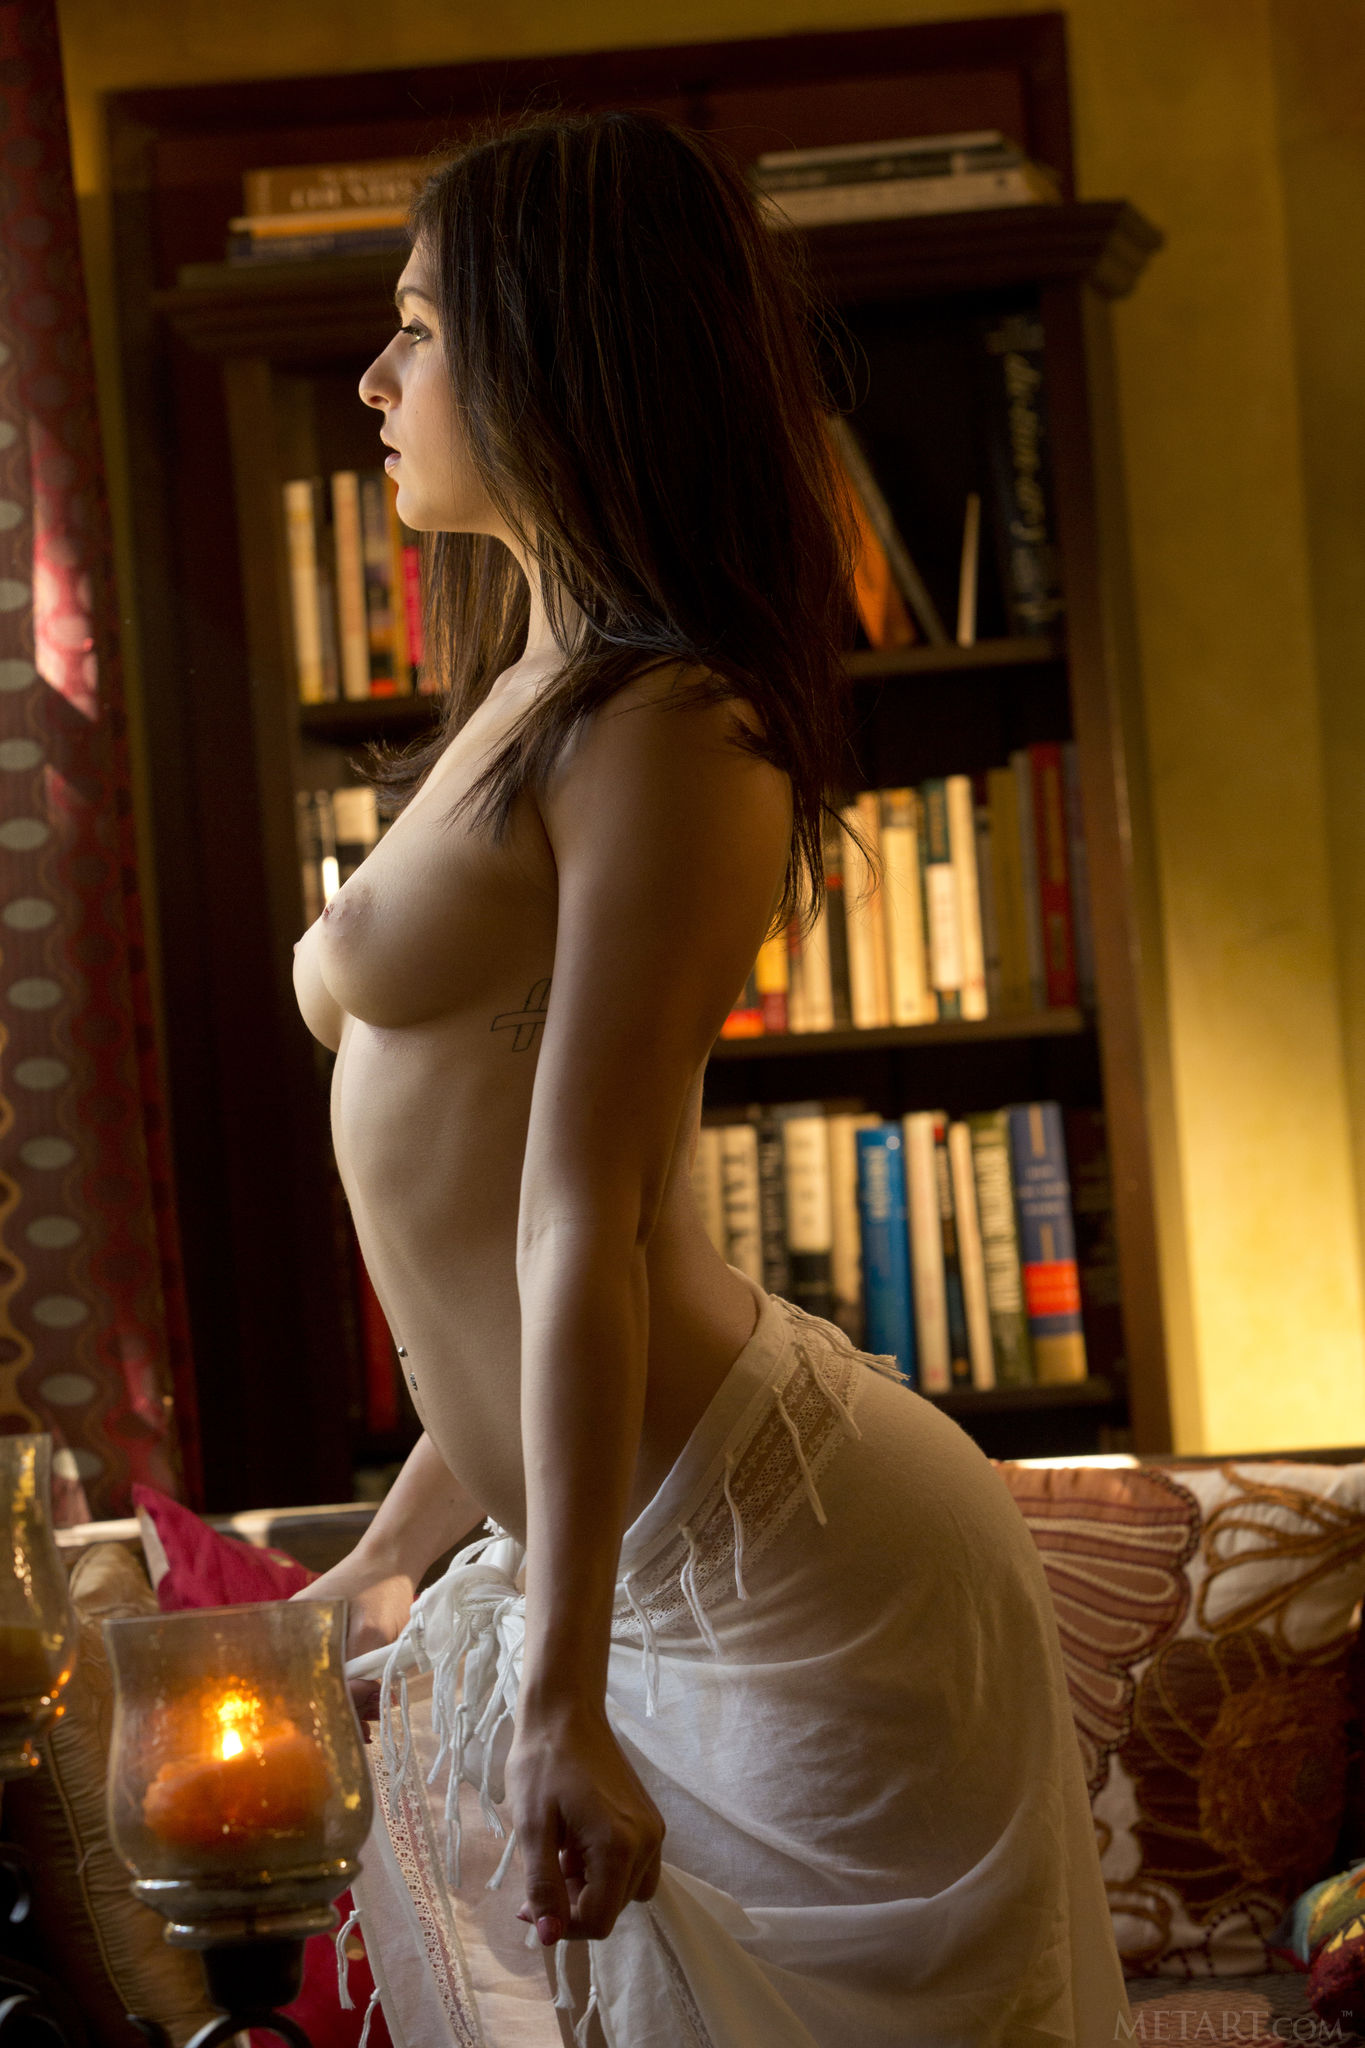 busty-shaved-brunette-leah-gotti-with-plump-pussy-from-met-art-5.jpg